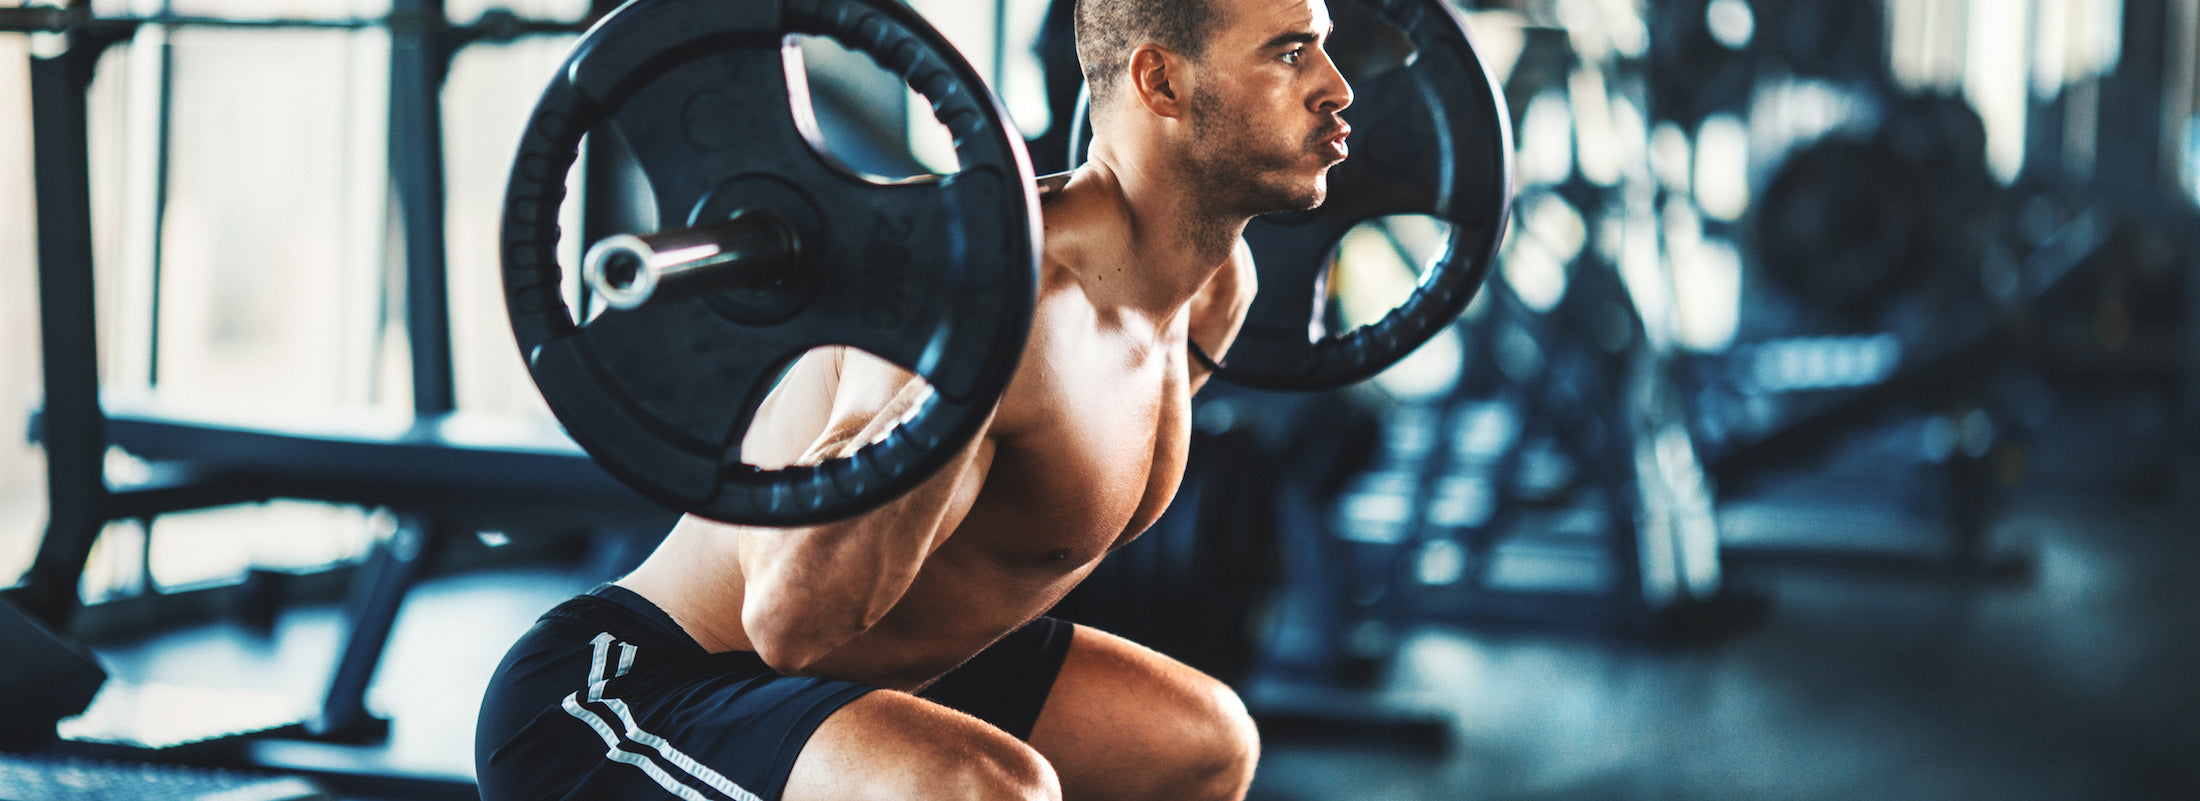 Weights training domination power stories